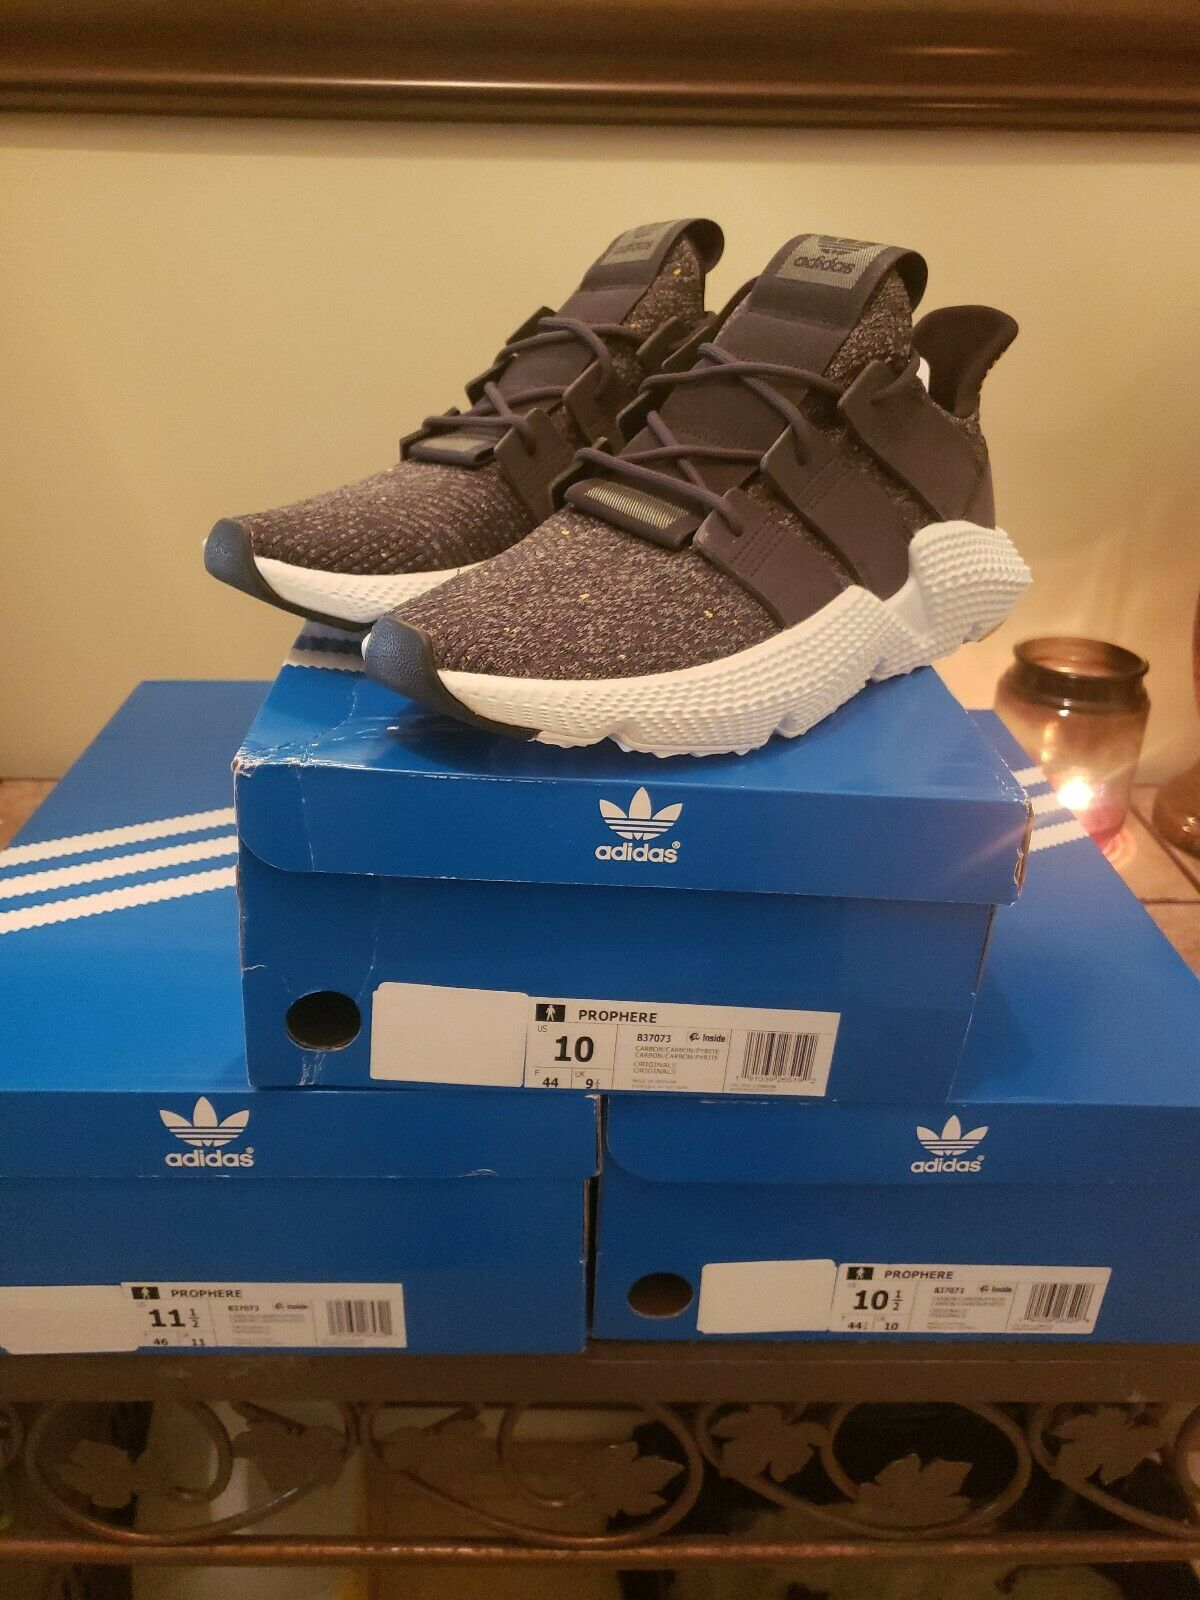 Adidas Originals Prophere Men's Size 10. Grey Sneakers shoes B37073. New in box.